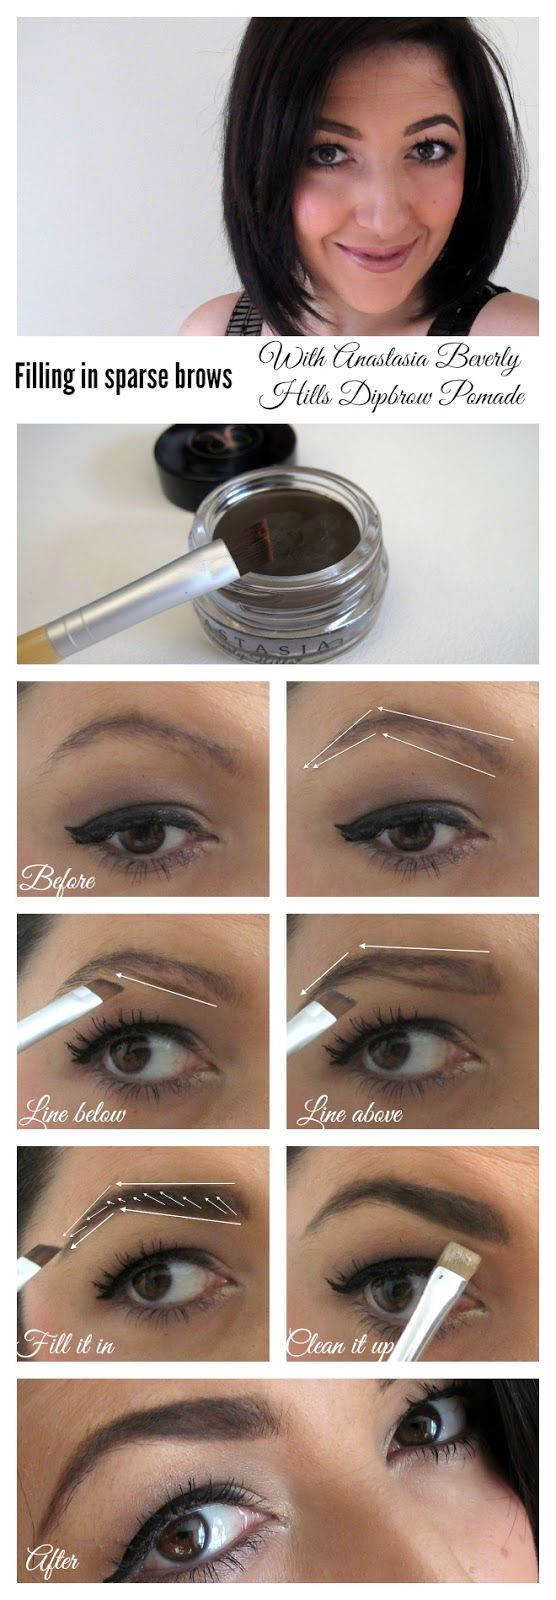 How to fill in sparse brows with Anastasia Beverly Hills Dipbrow Pomade// In need of a detox? 10% off using our discount code 'Pin10' at www.ThinTea.com.au